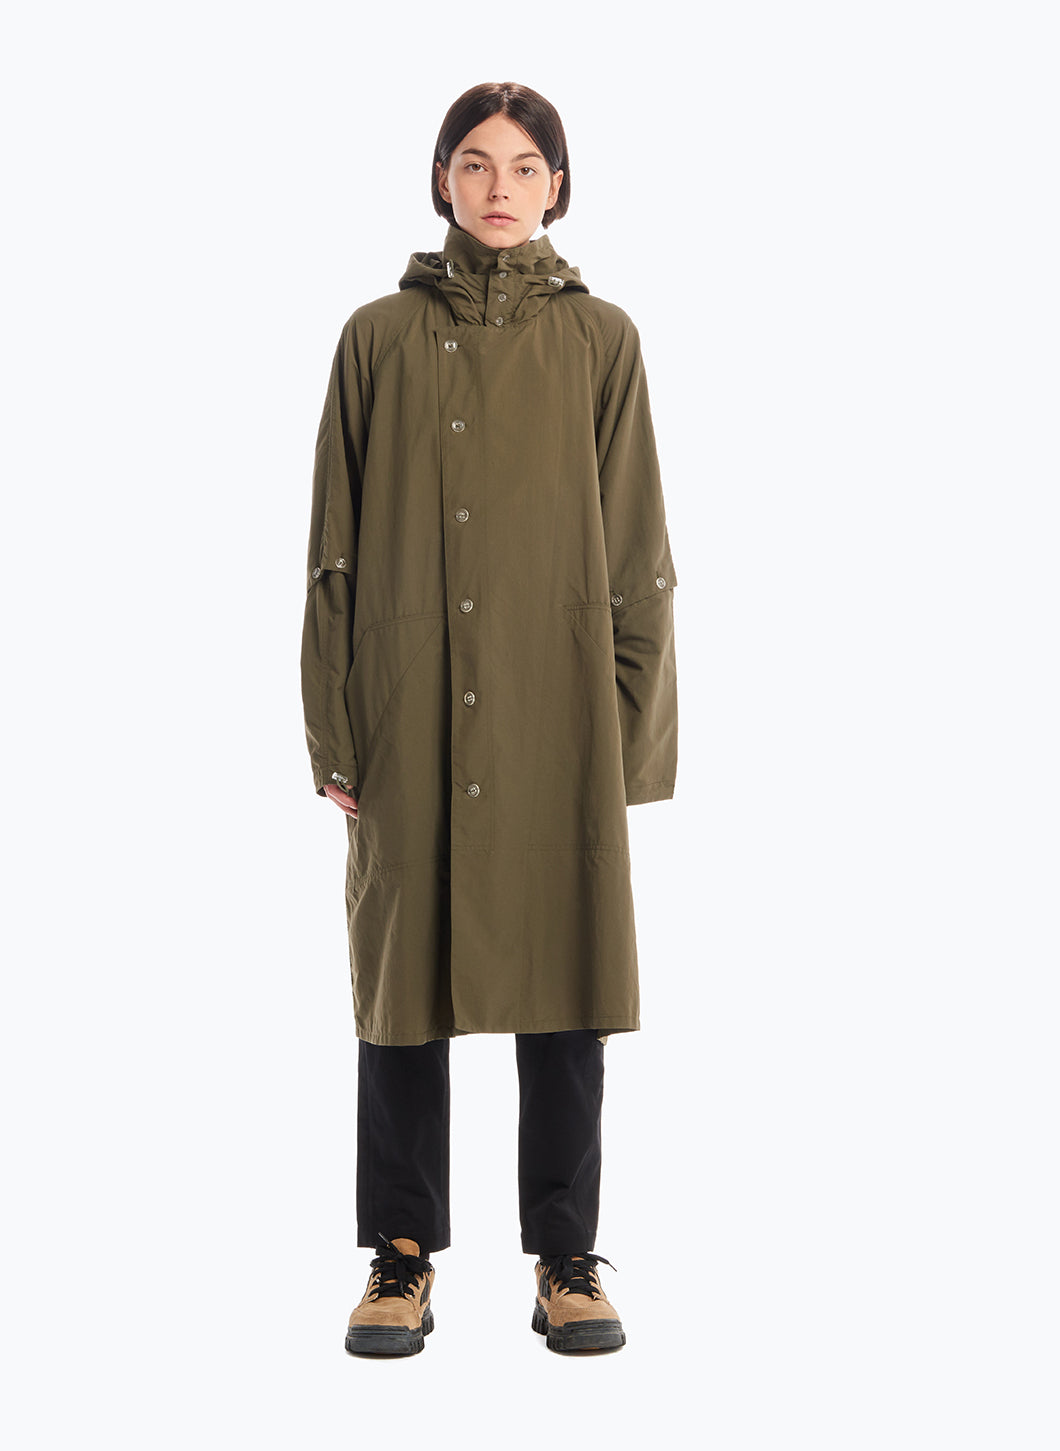 Hooded Overcoat in Olive Microfiber Fabric